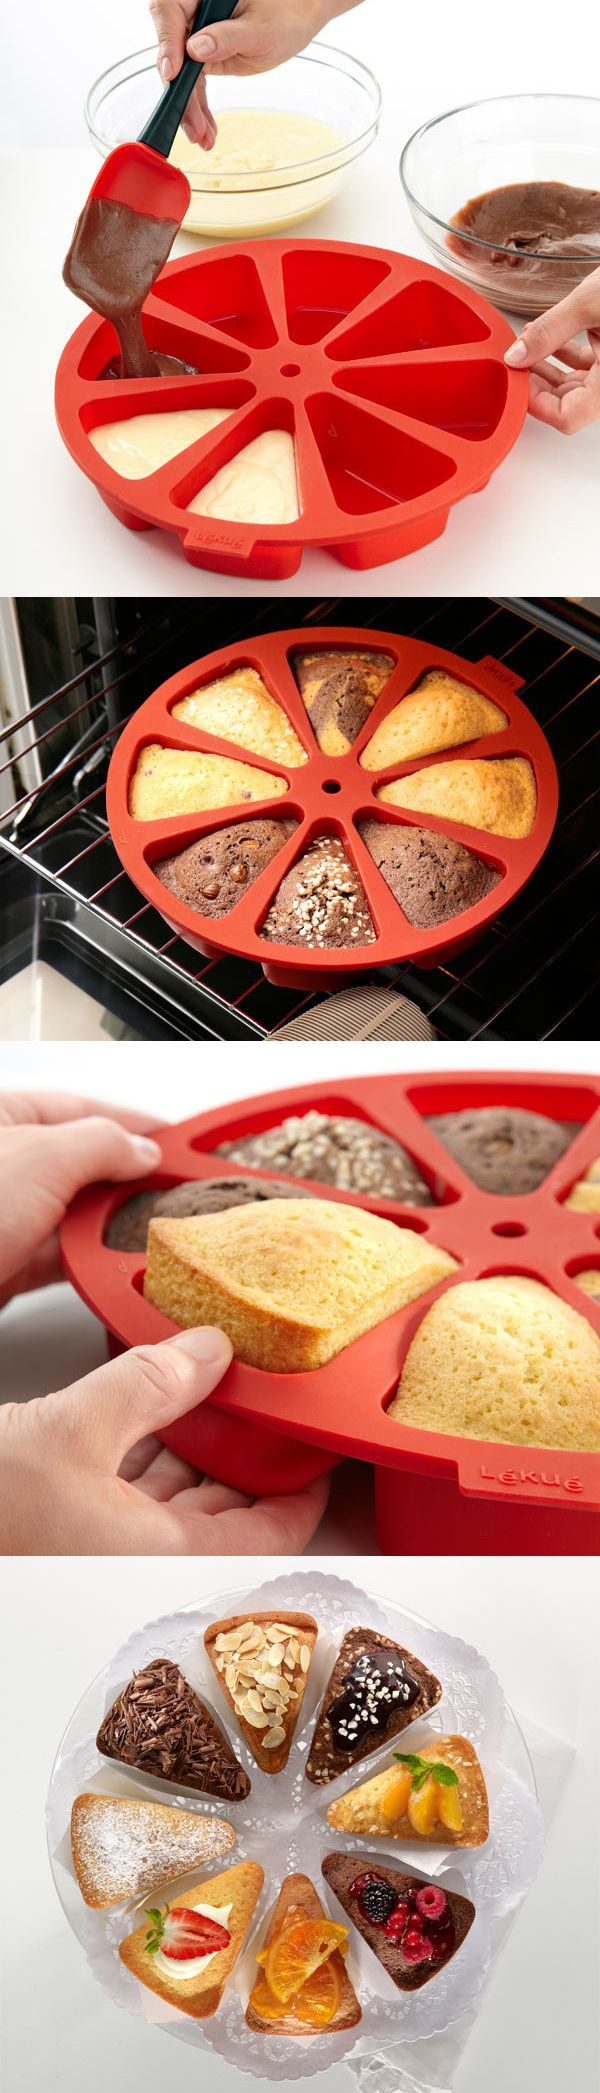 Cake Mold for Individual Cake Slices. Yumm, imagine all of the possibilities!